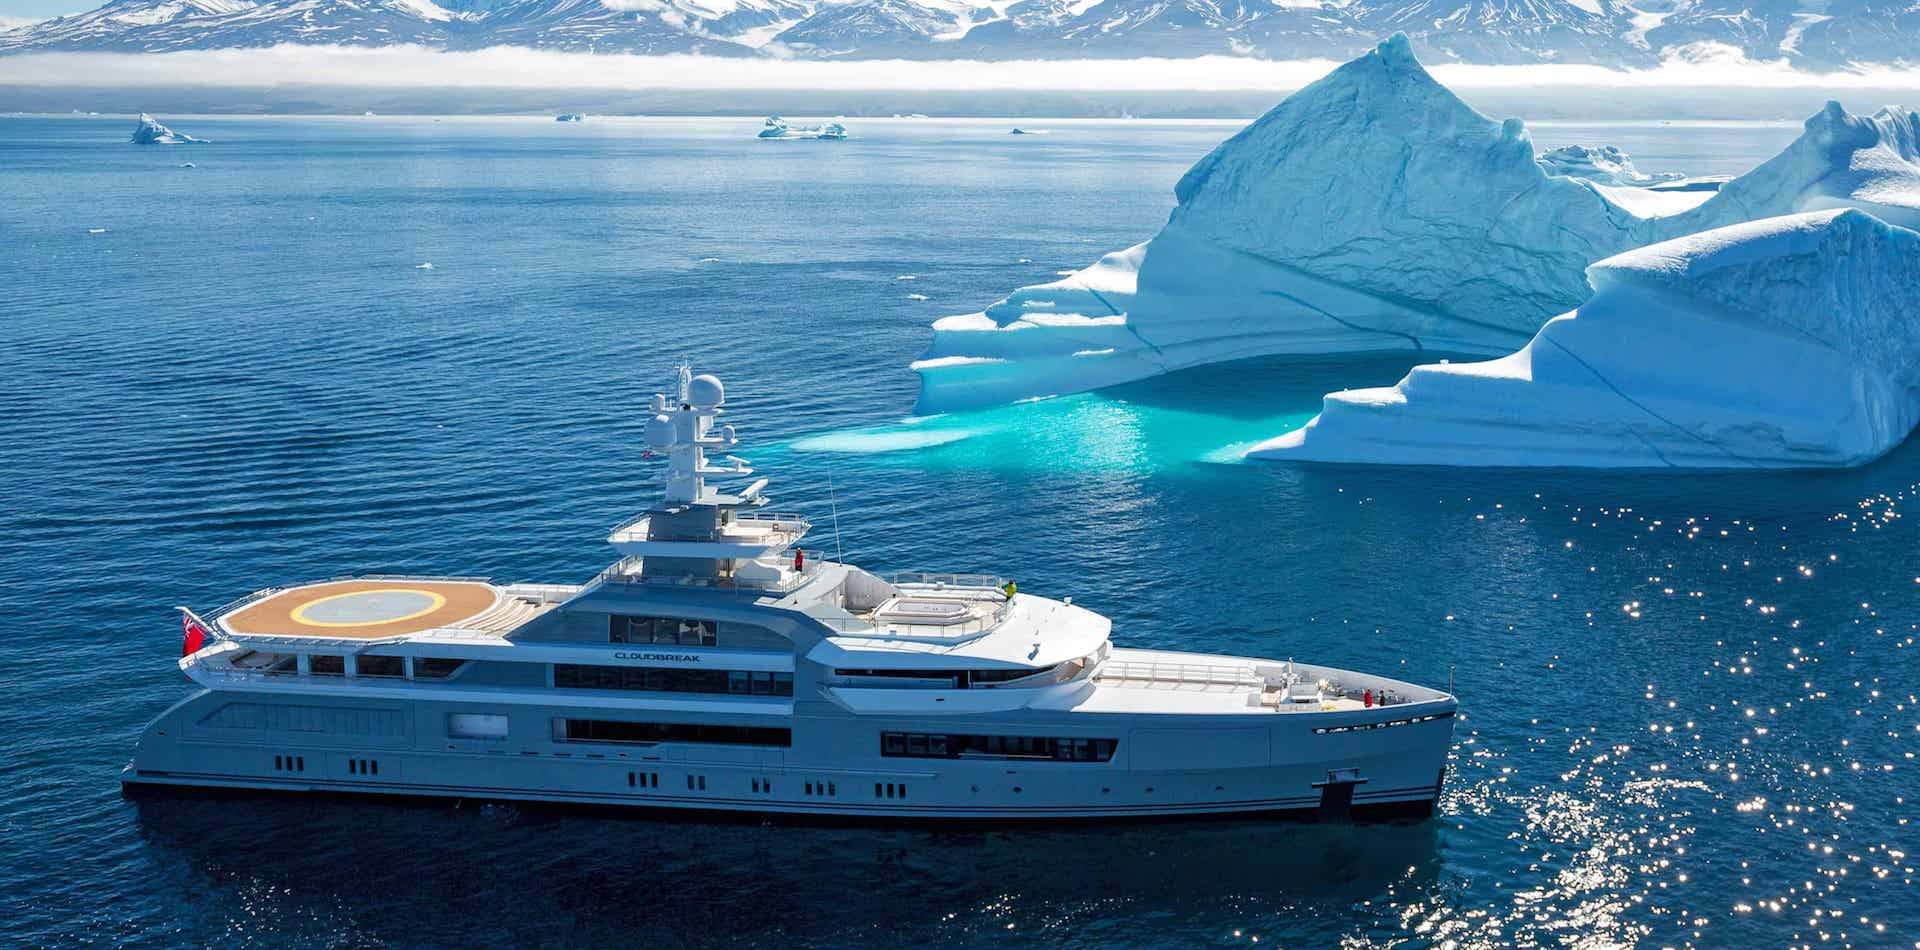 Cloudbreak Yacht in Greenland